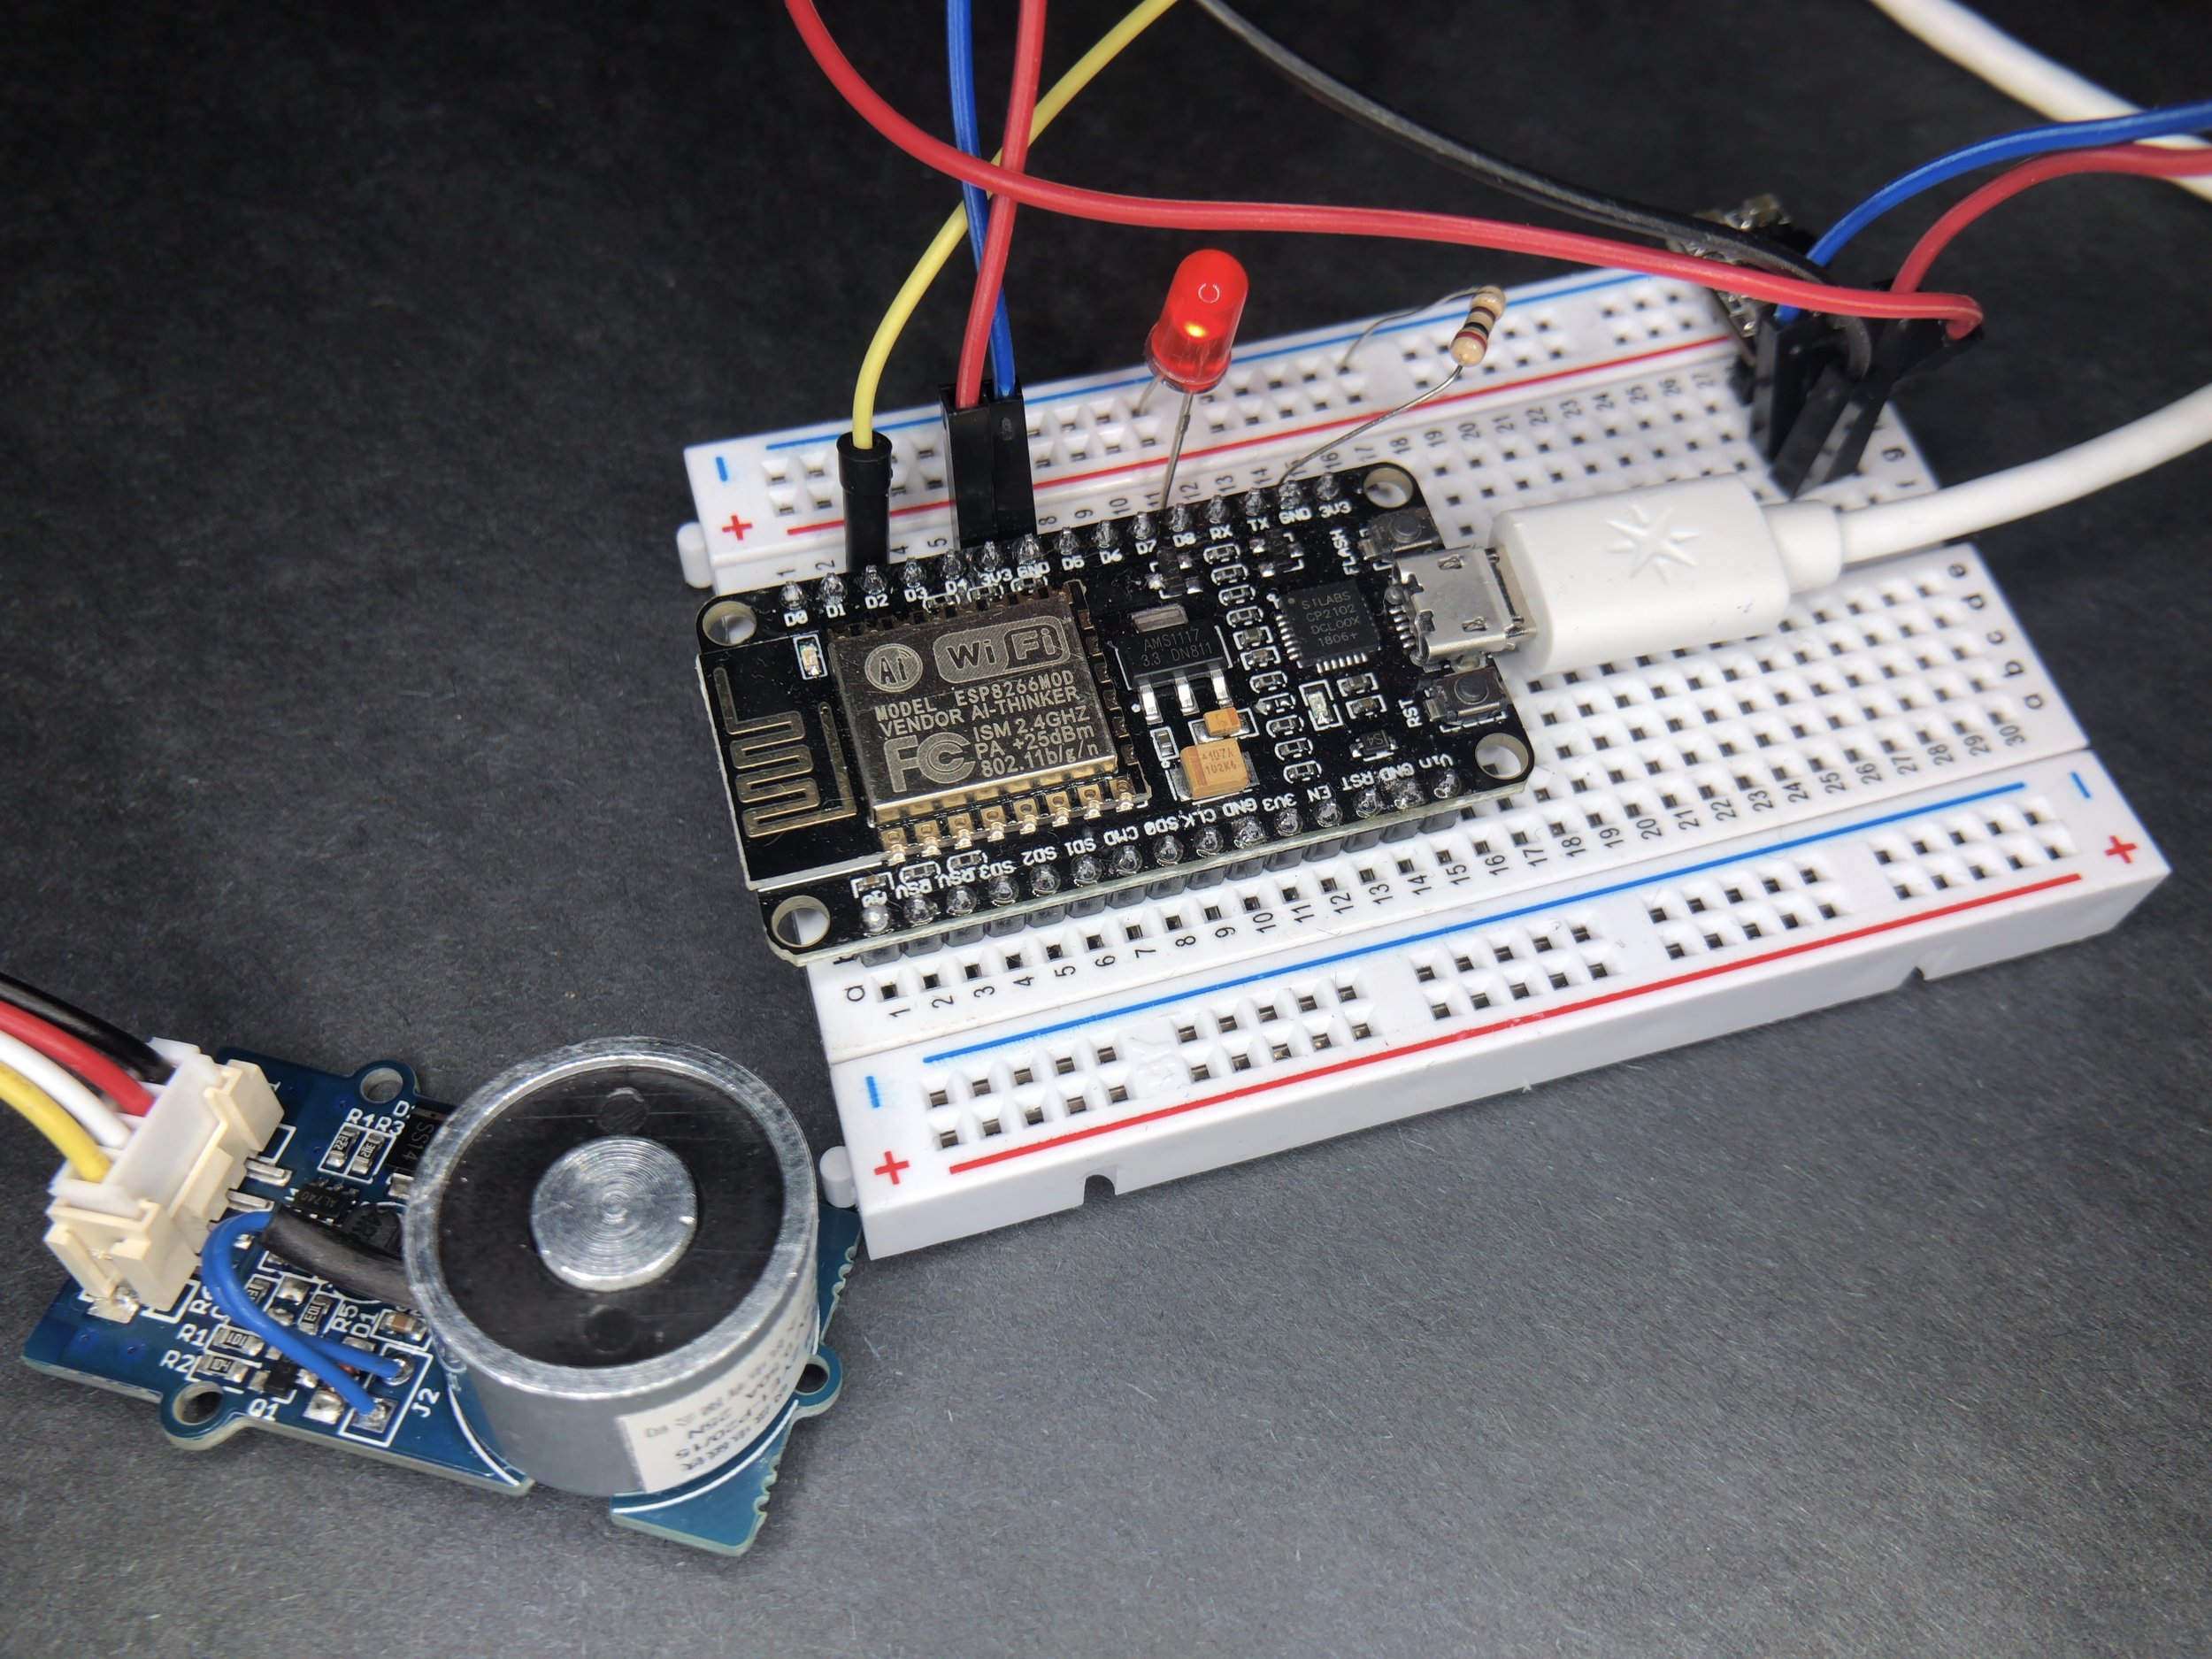 Setup showing electromagnet, NodeMCU, and LED used in this tutorial for server-side control of the NodeMCU Arduino WiFi board.